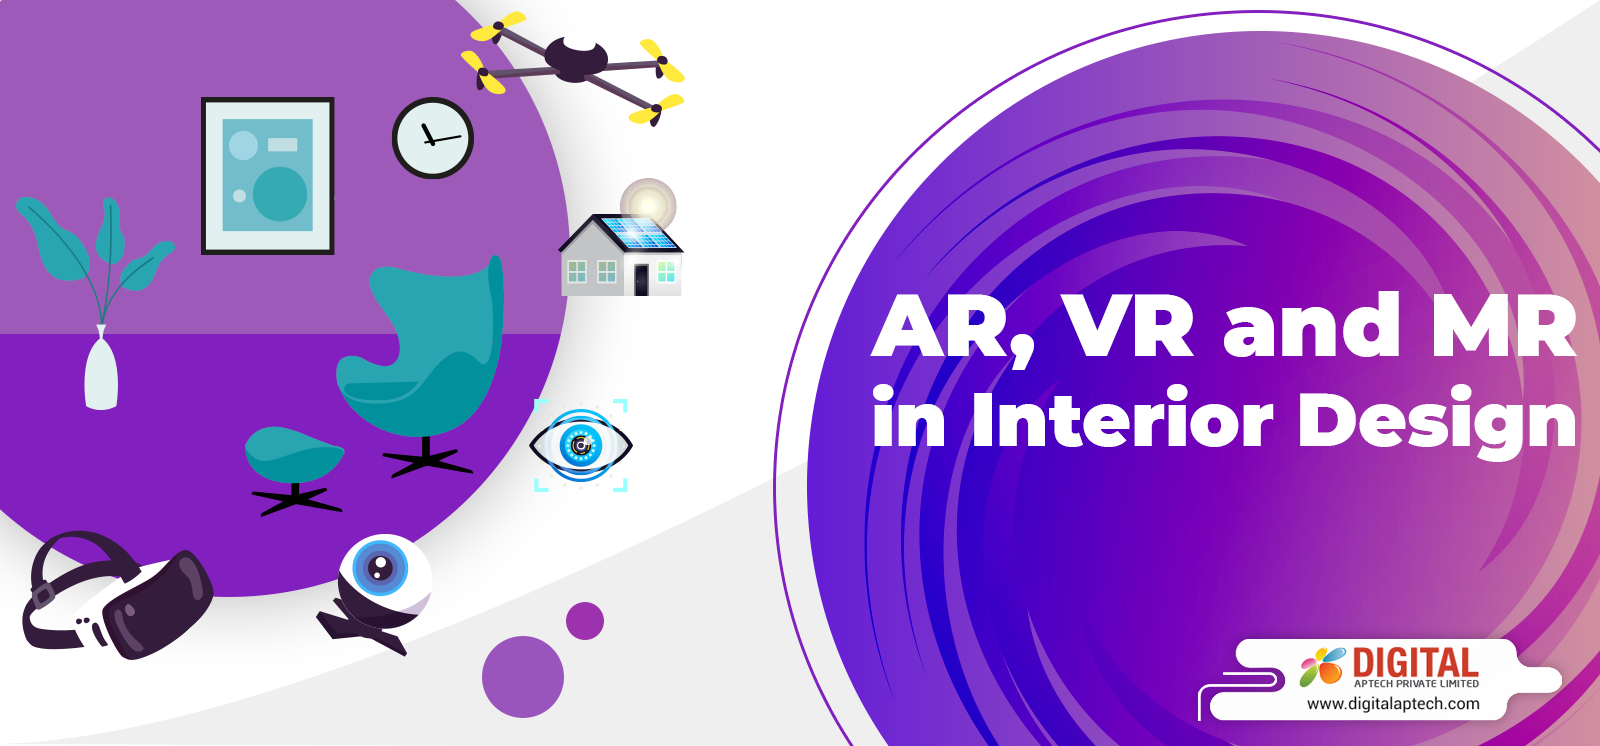 How AR, VR and MR are Revolutionizing the Field of Interior Design?